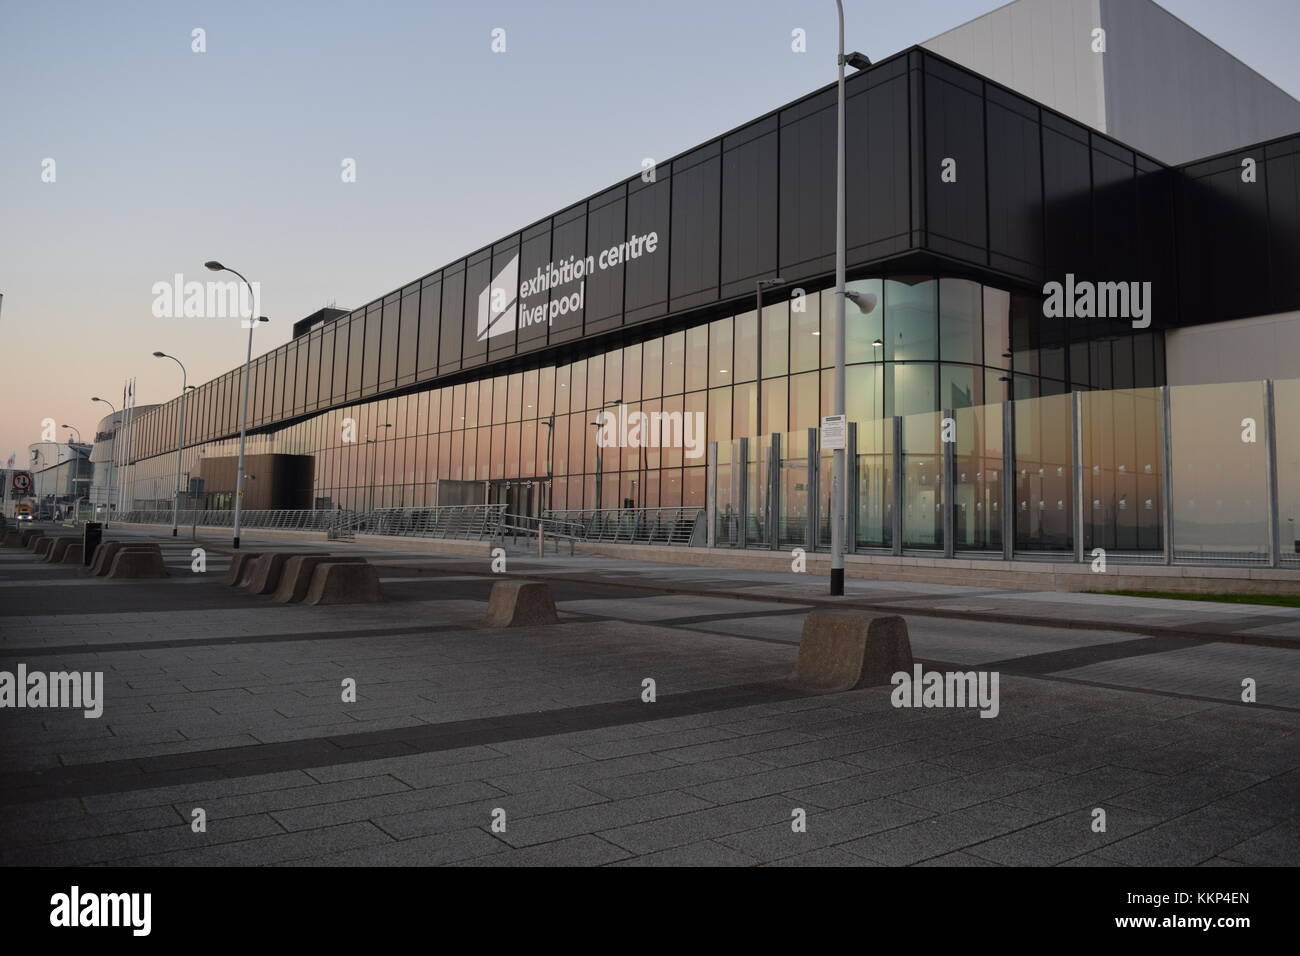 Exhibition Centre Liverpool - Stock Image